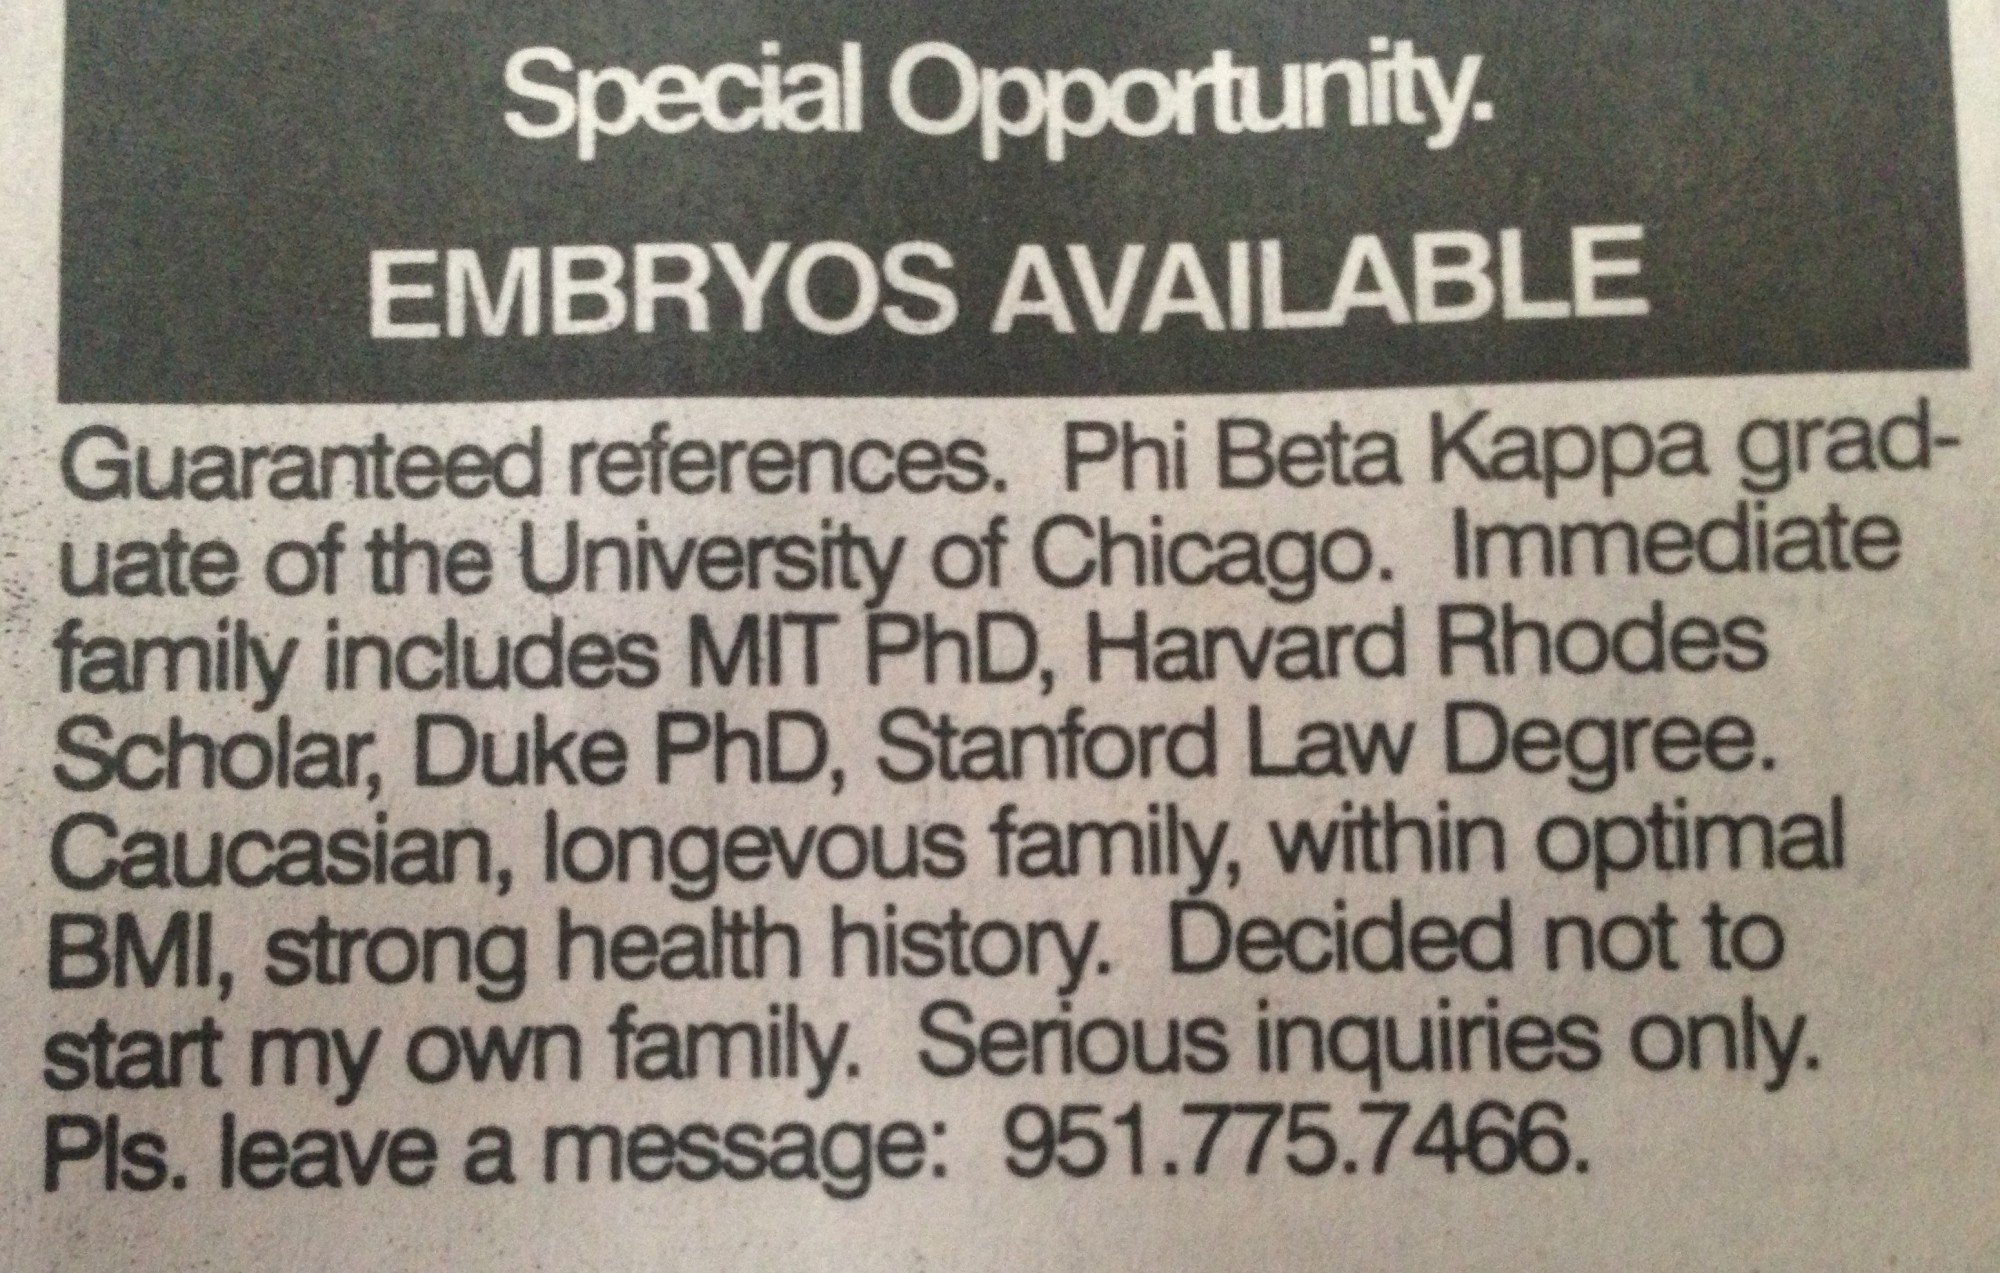 Embryos with a pedigree